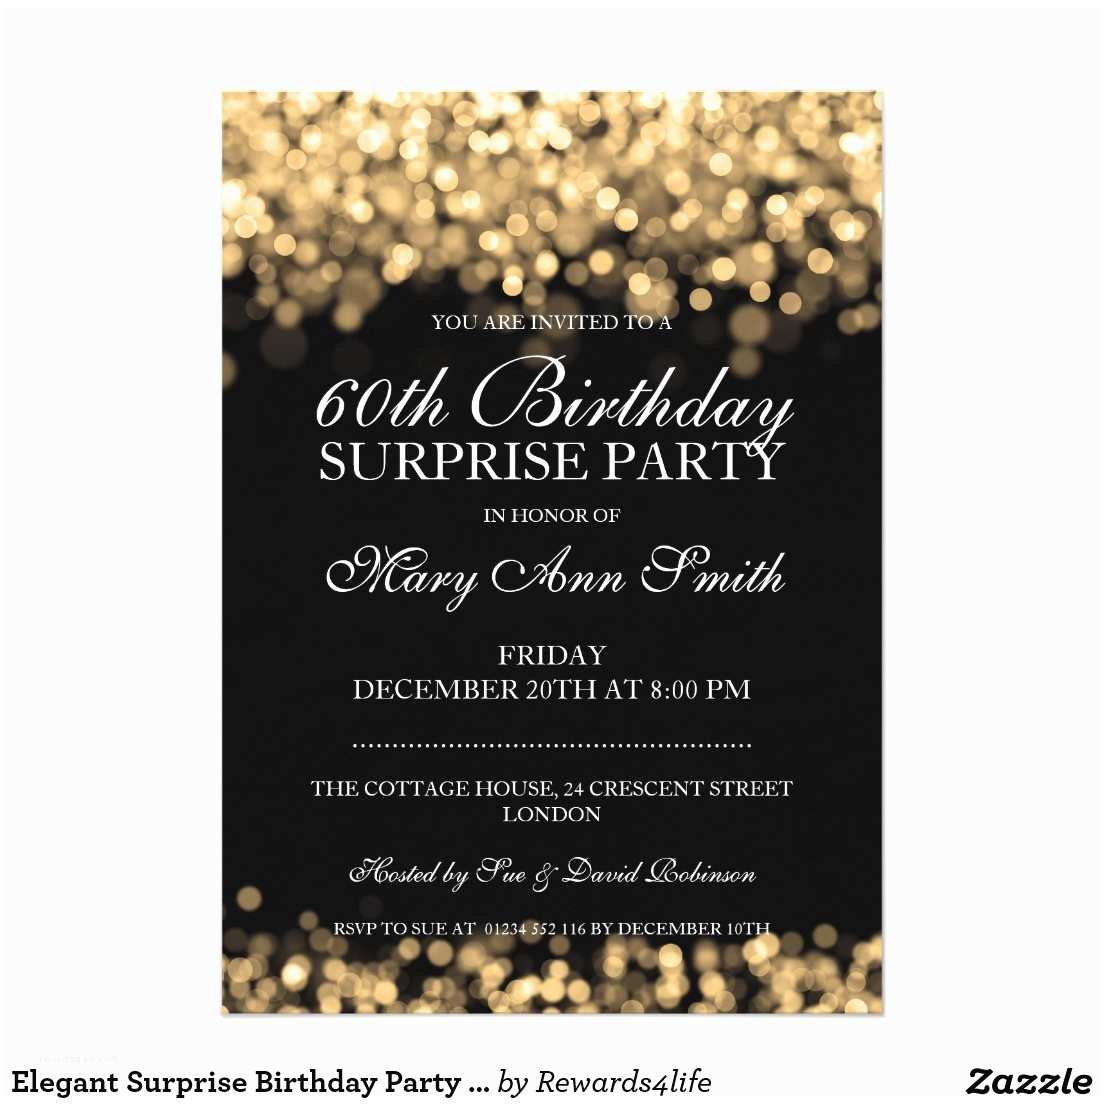 Surprise 60th Birthday Party Invitations 60th Birthday Surprise Party Invitations